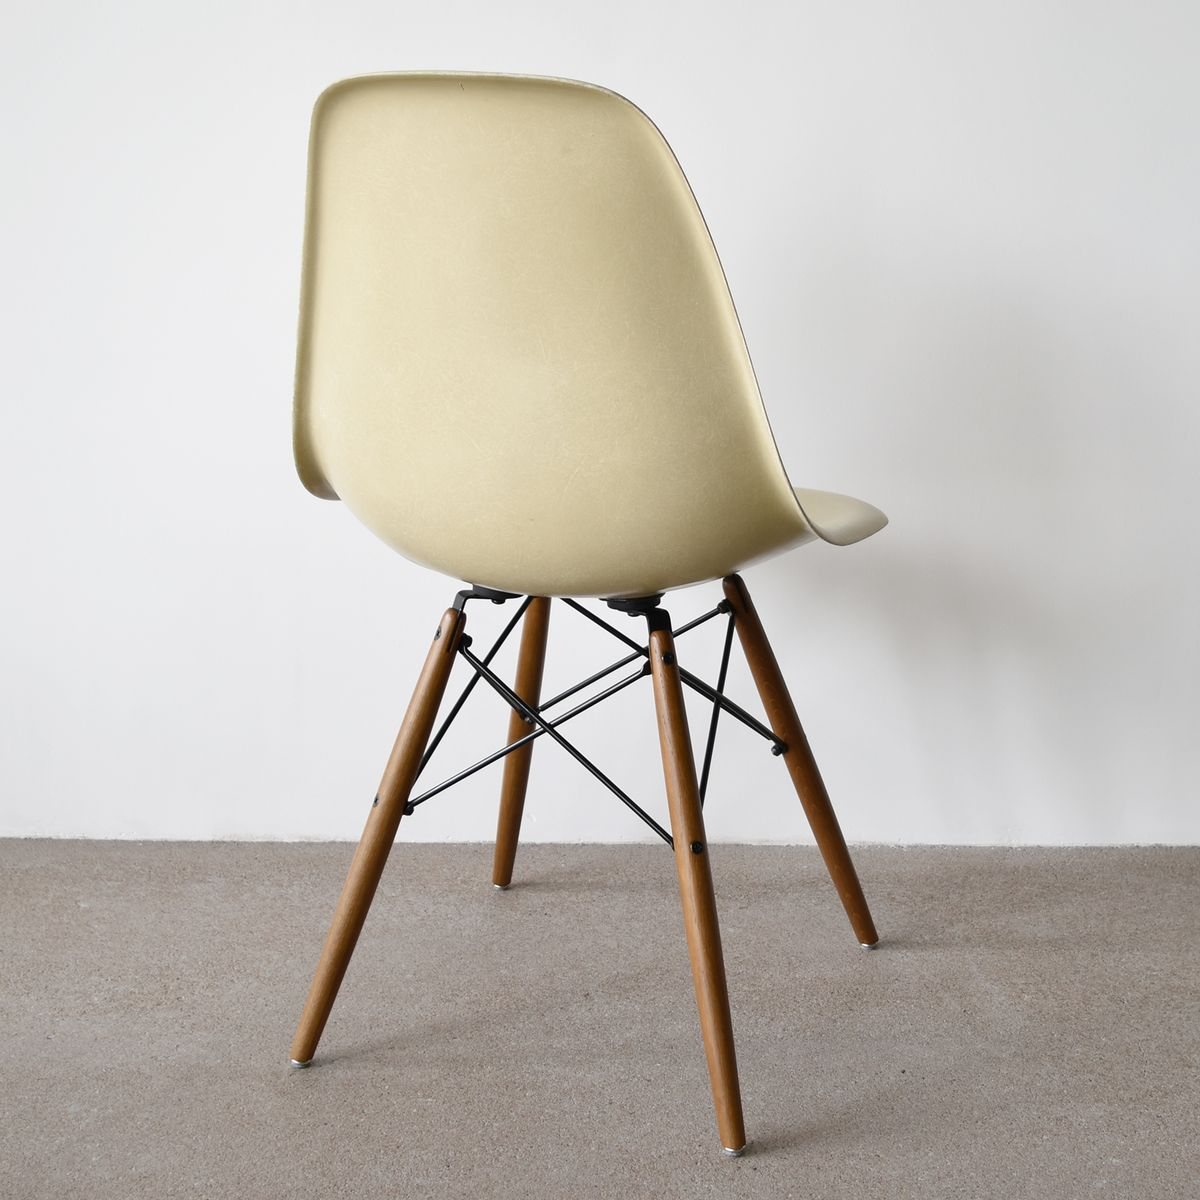 Beige dsw chair by charles and ray eames for herman miller for Inspiration dsw de charles ray eames